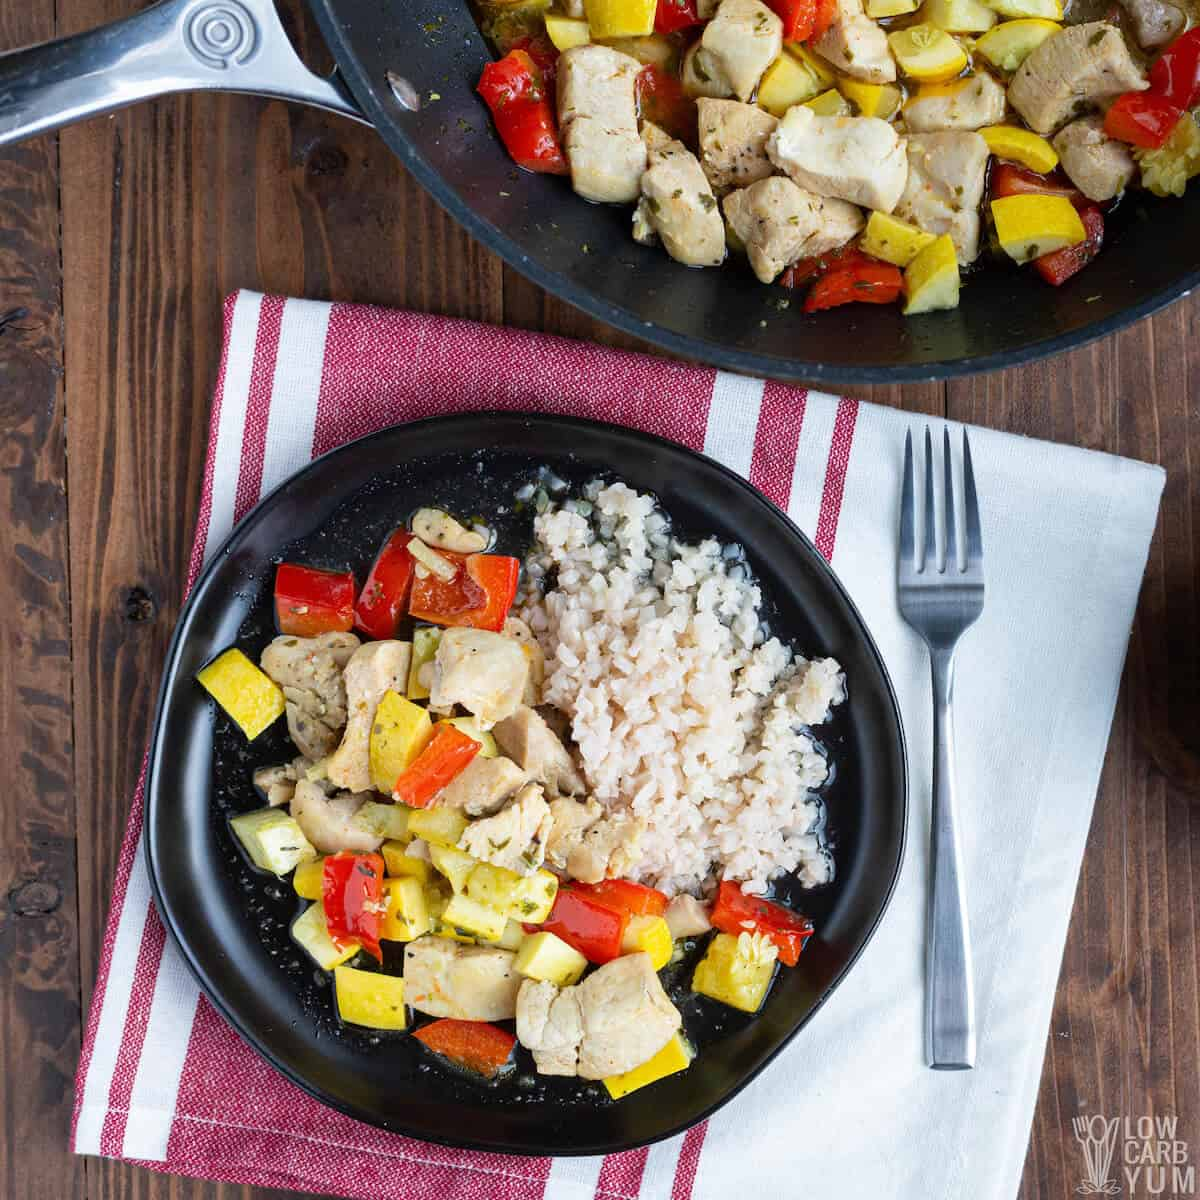 stir-fry without soy sauce